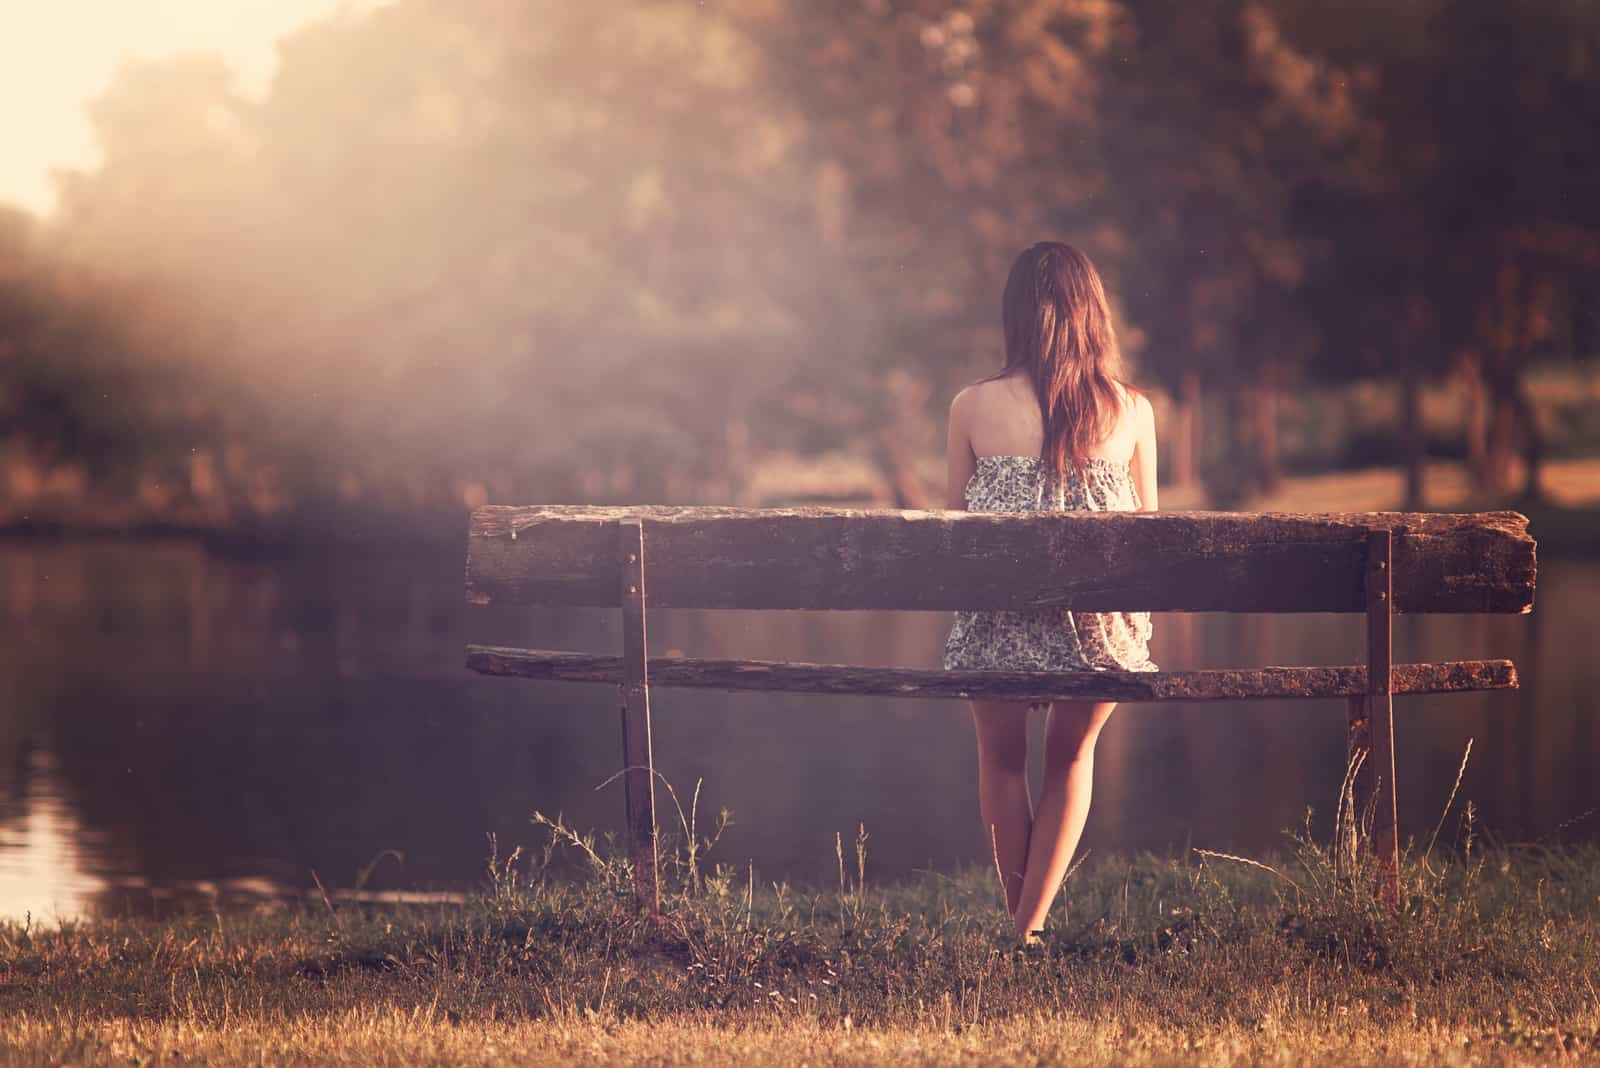 the woman sits on a bench and looks out at the lake